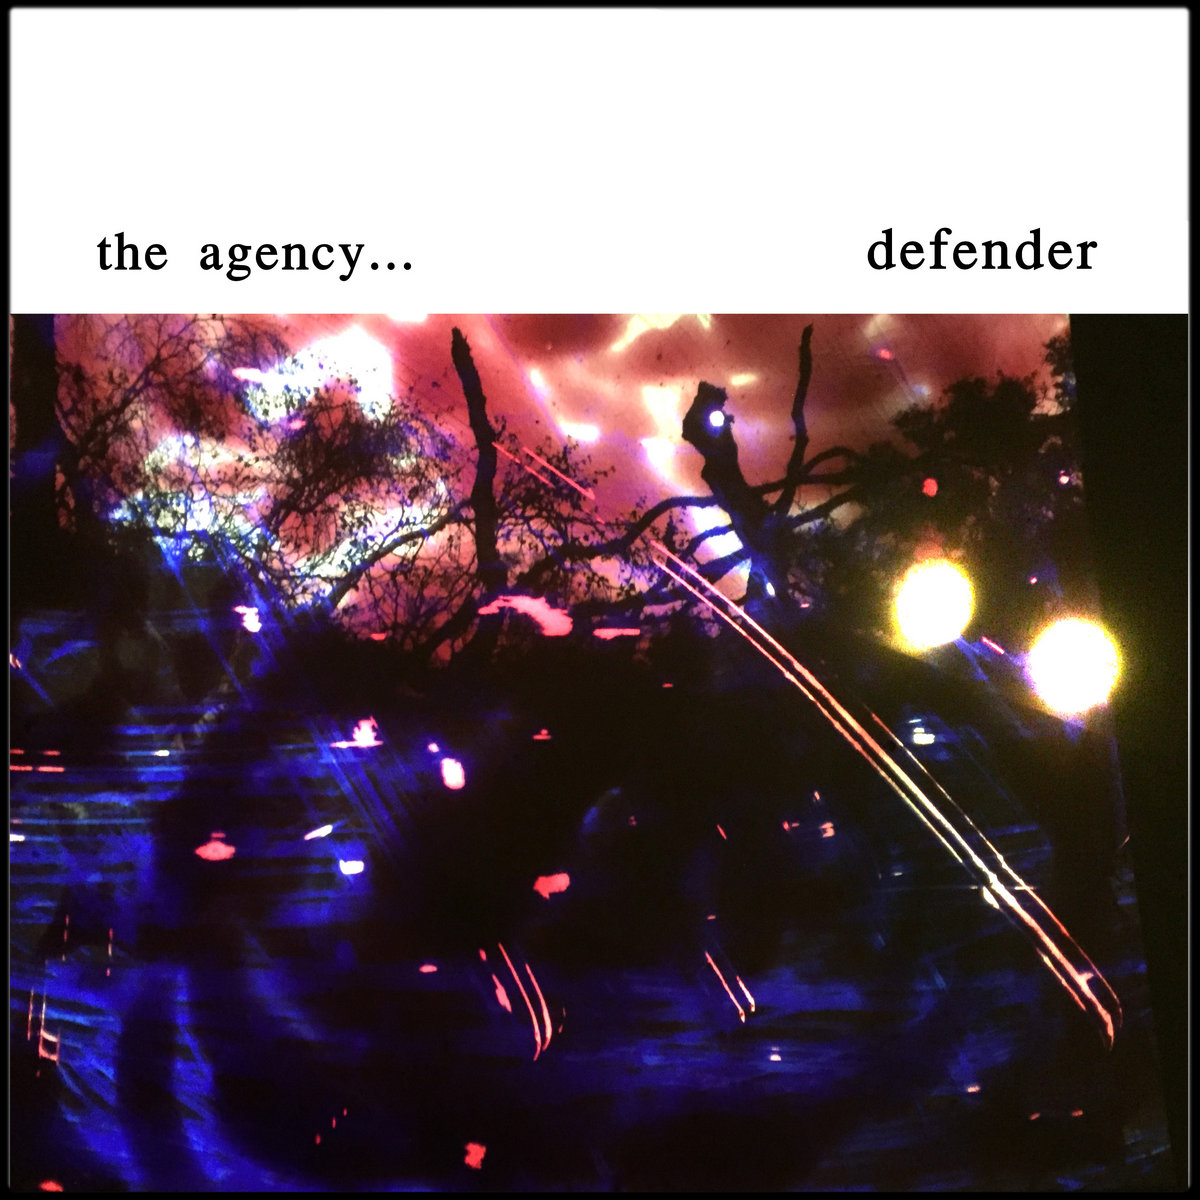 Defender by TheAgency...